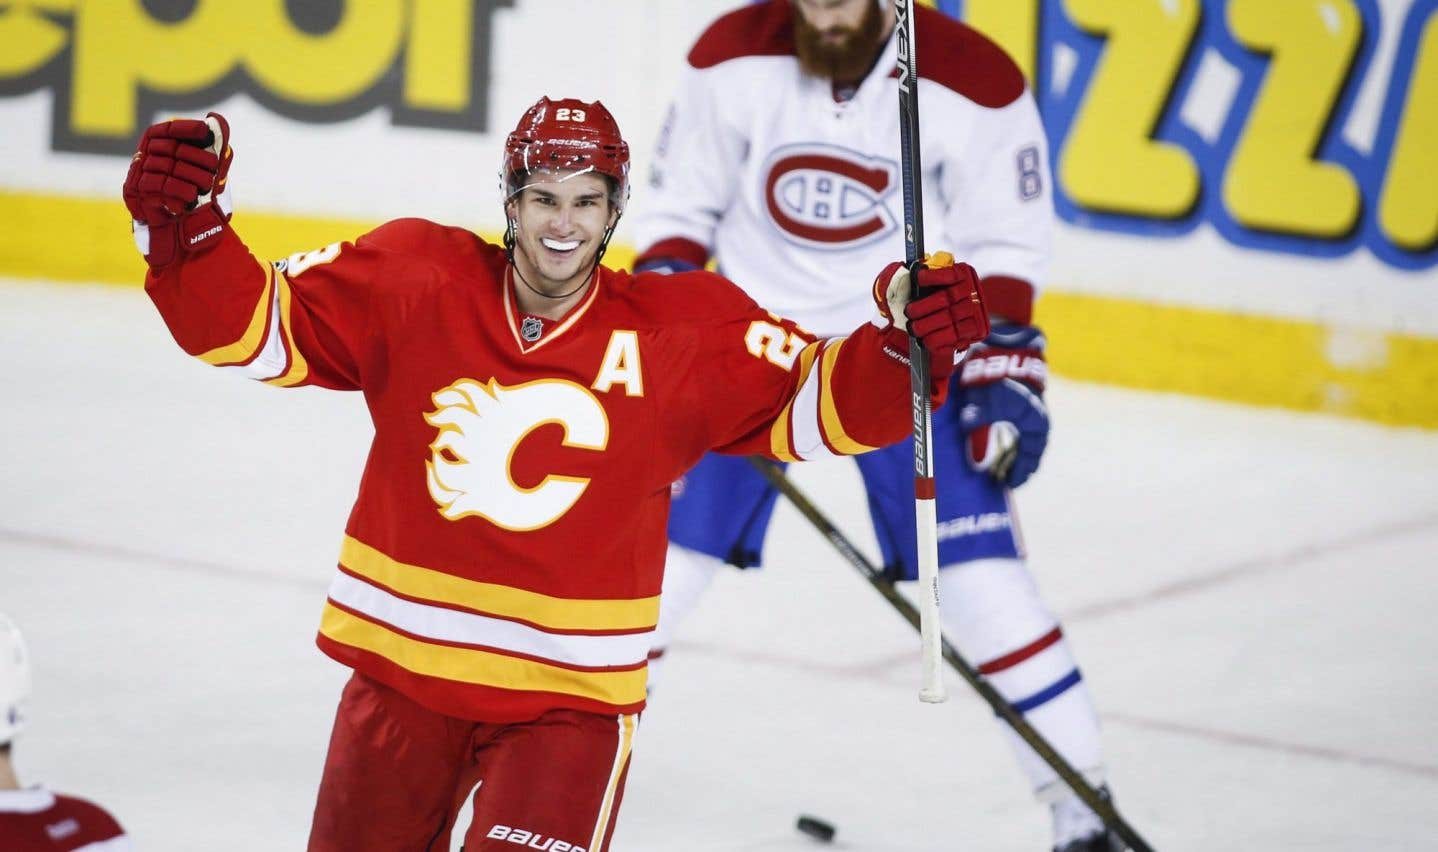 Les Flames blanchissent le Canadien 5-0